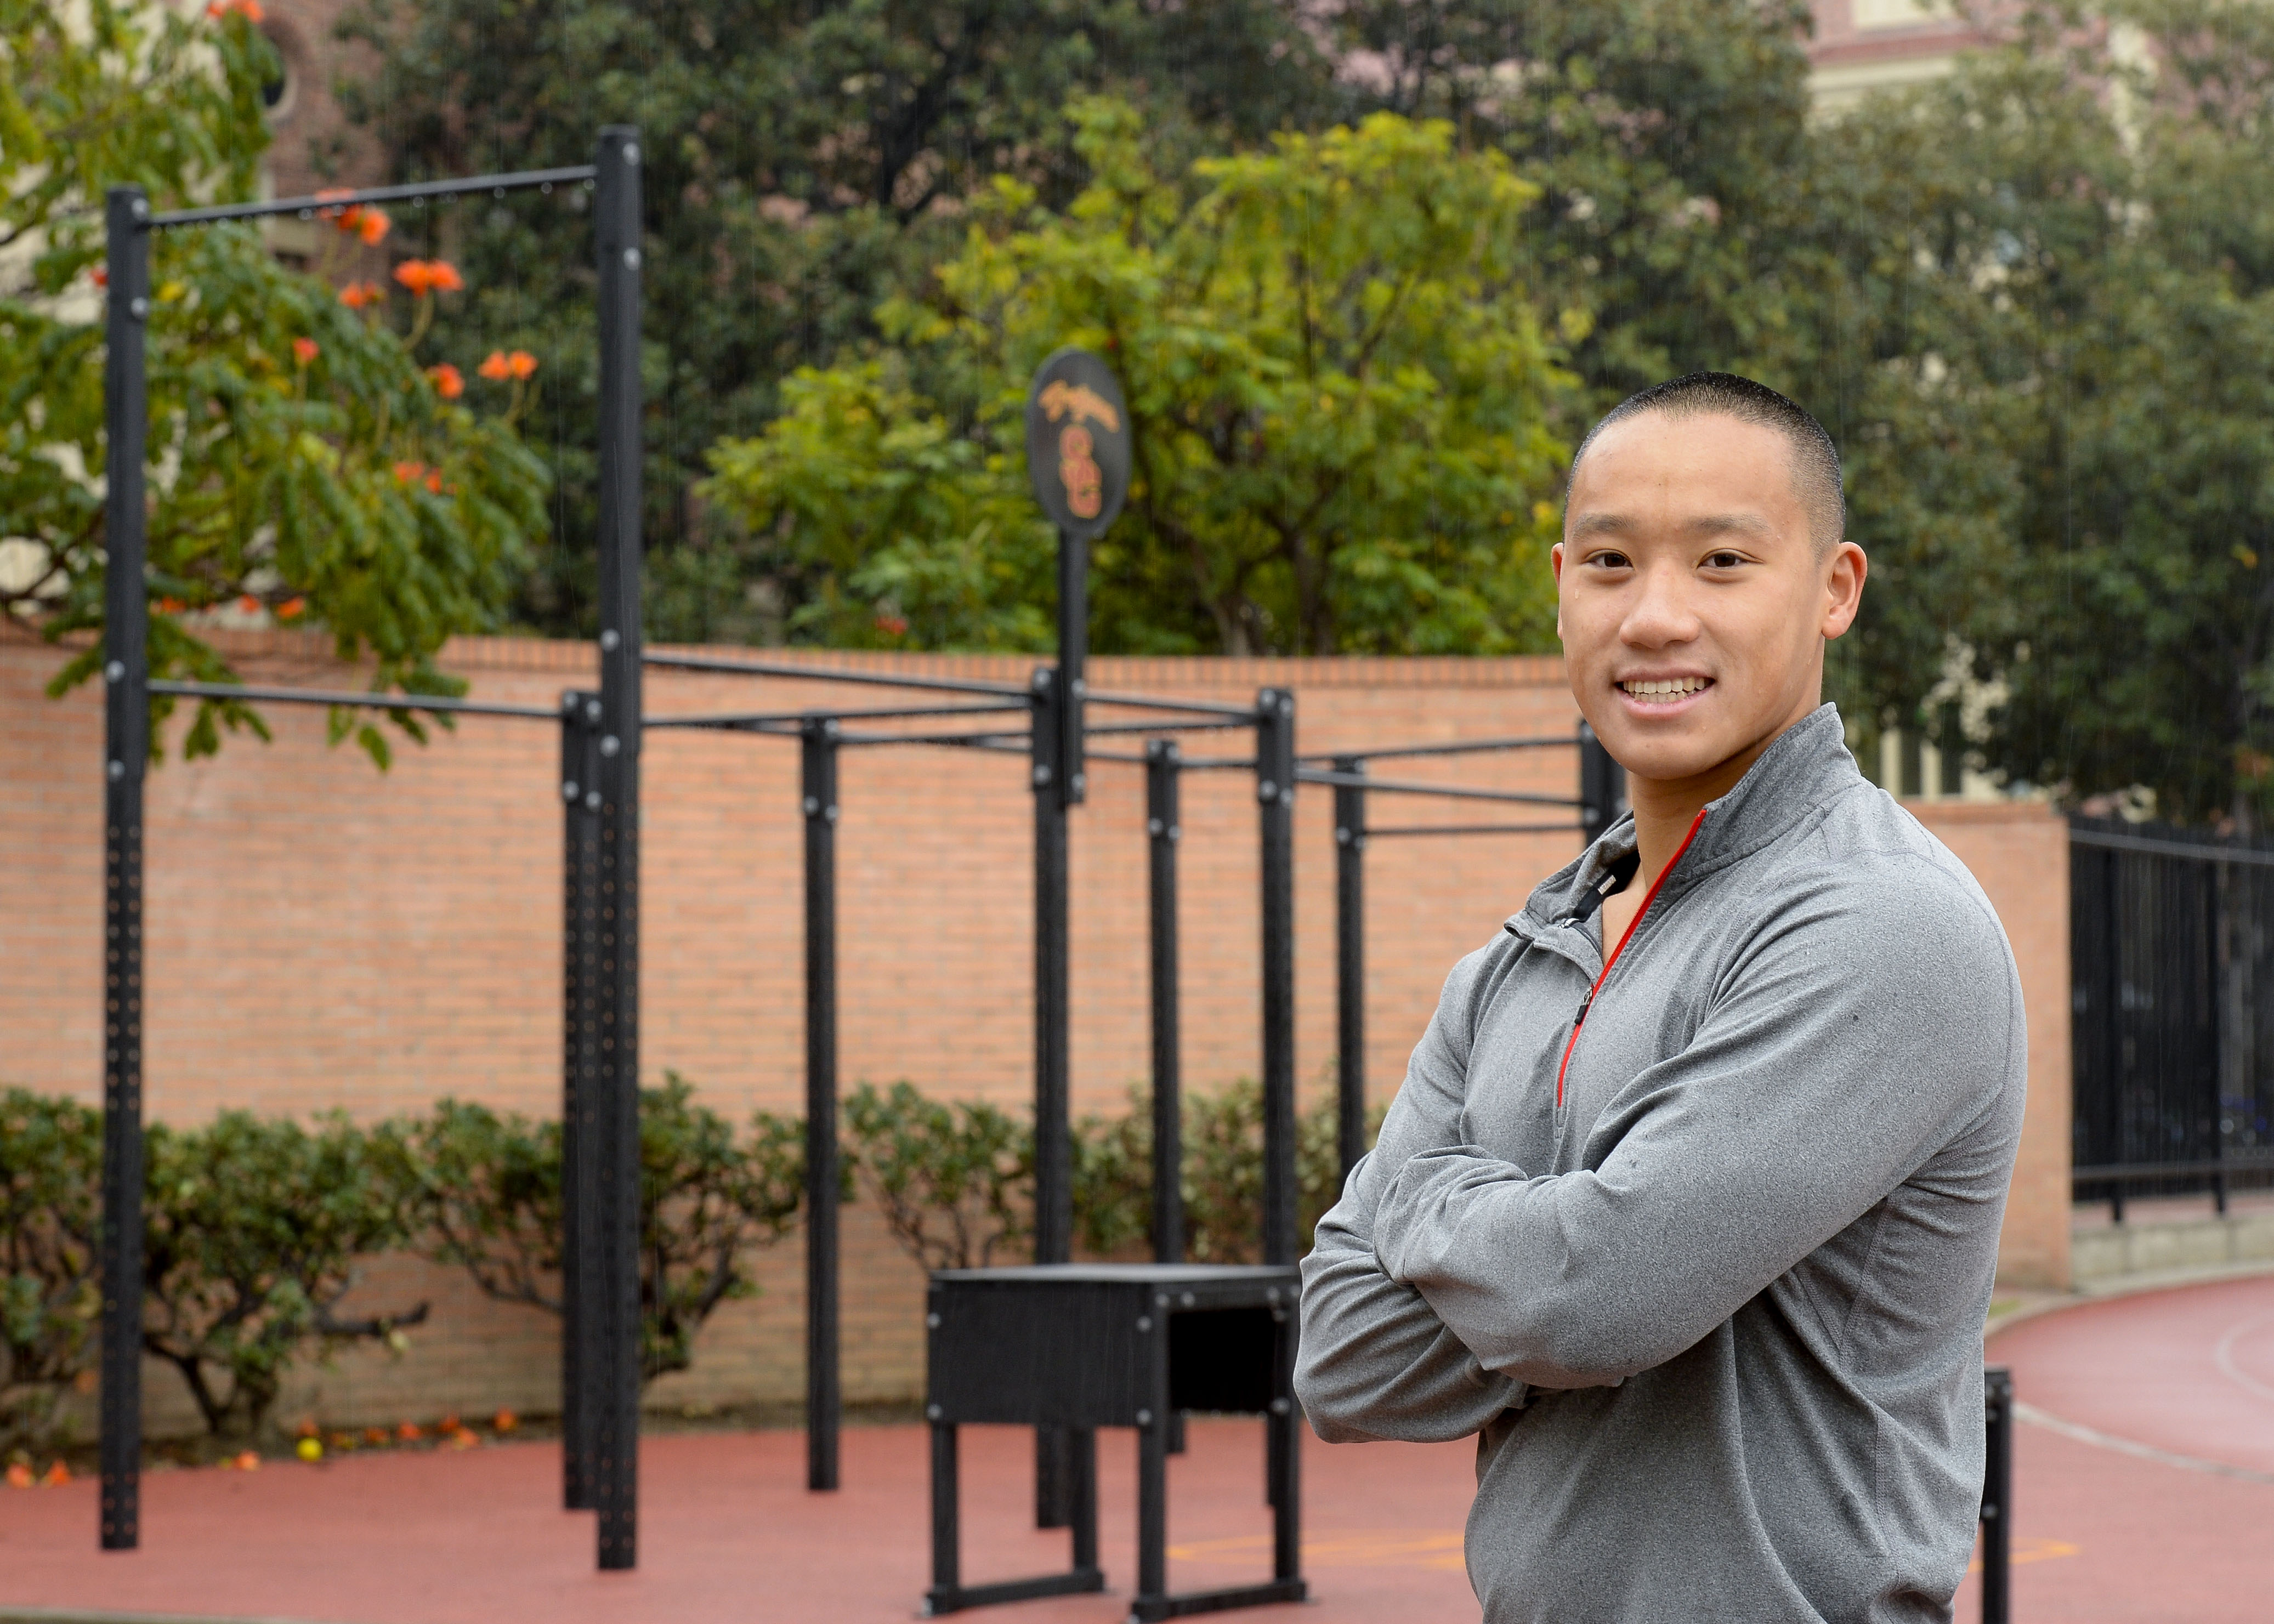 USC Marshall School of Business student Eric Chan spearheaded the new workout area at Cromwell Field. (USC Photo/ Gus Ruelas)